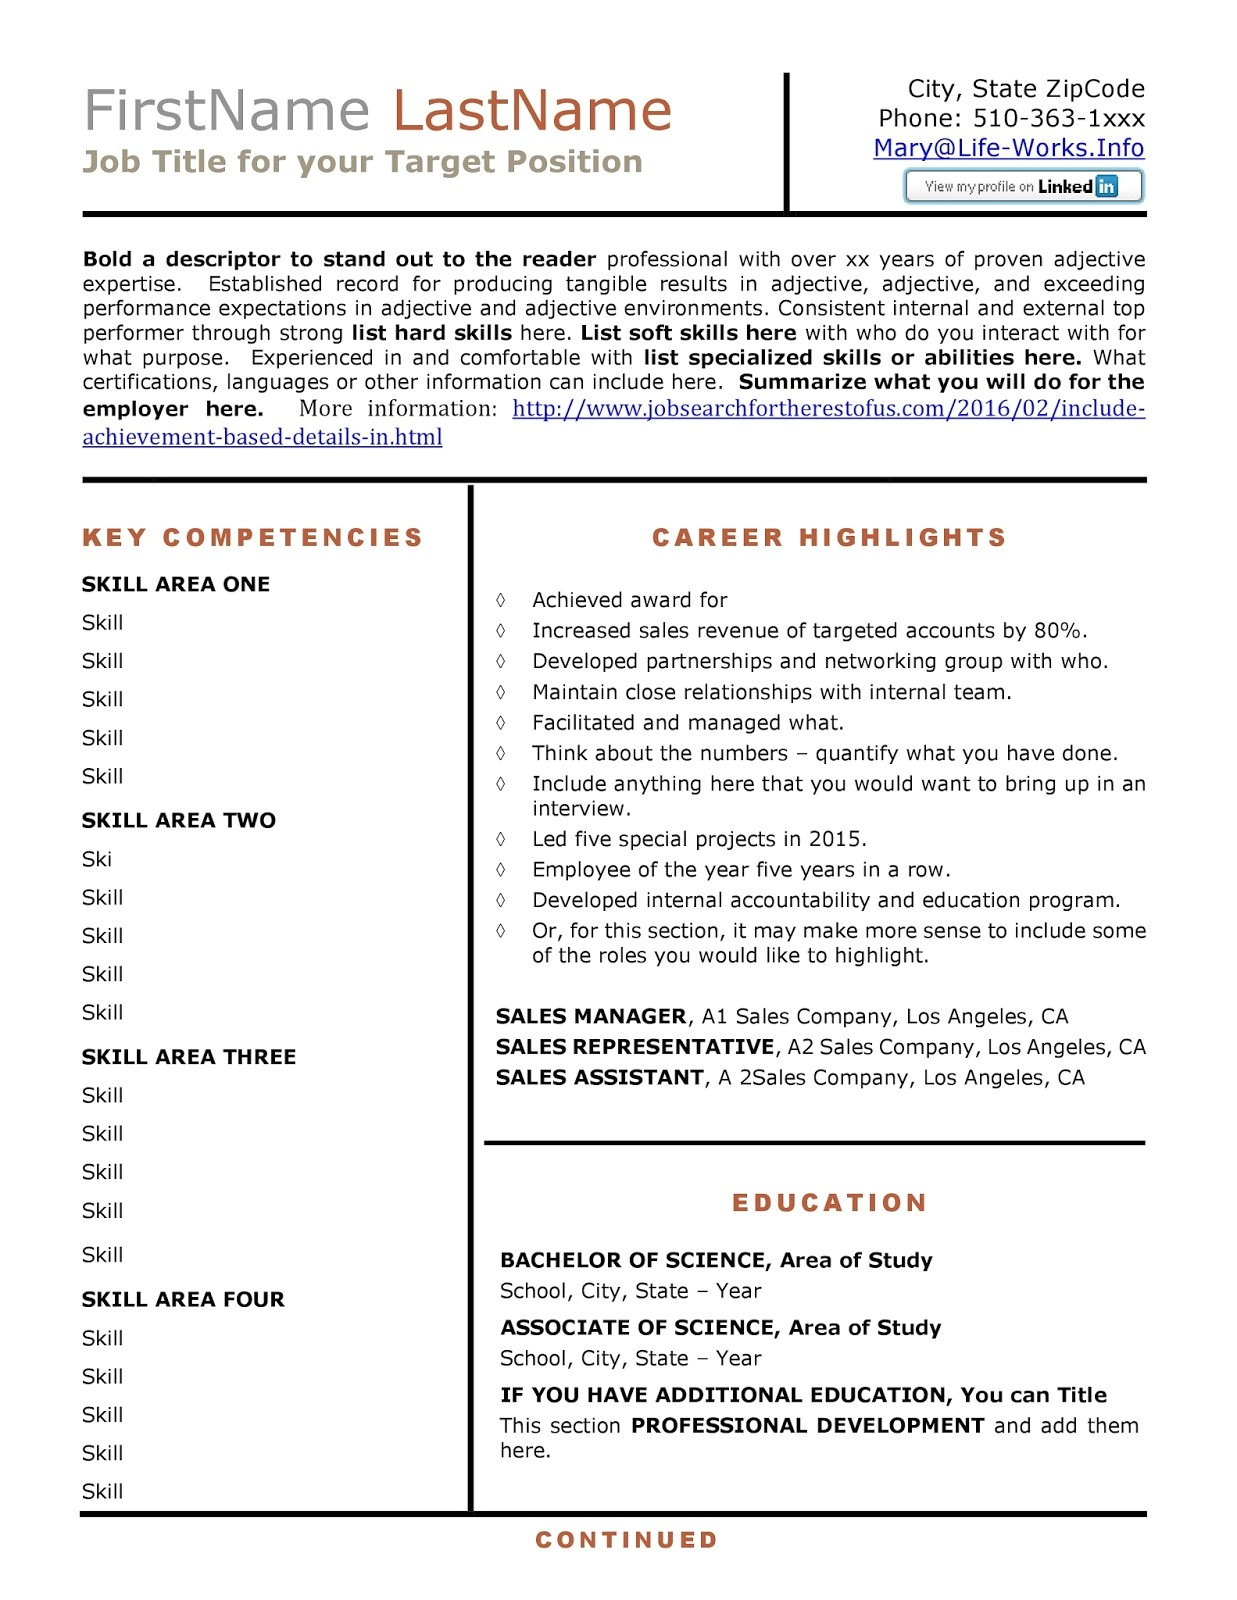 Achievement Based Resume Template Job Search for the Rest Of Us Include Achievement Based